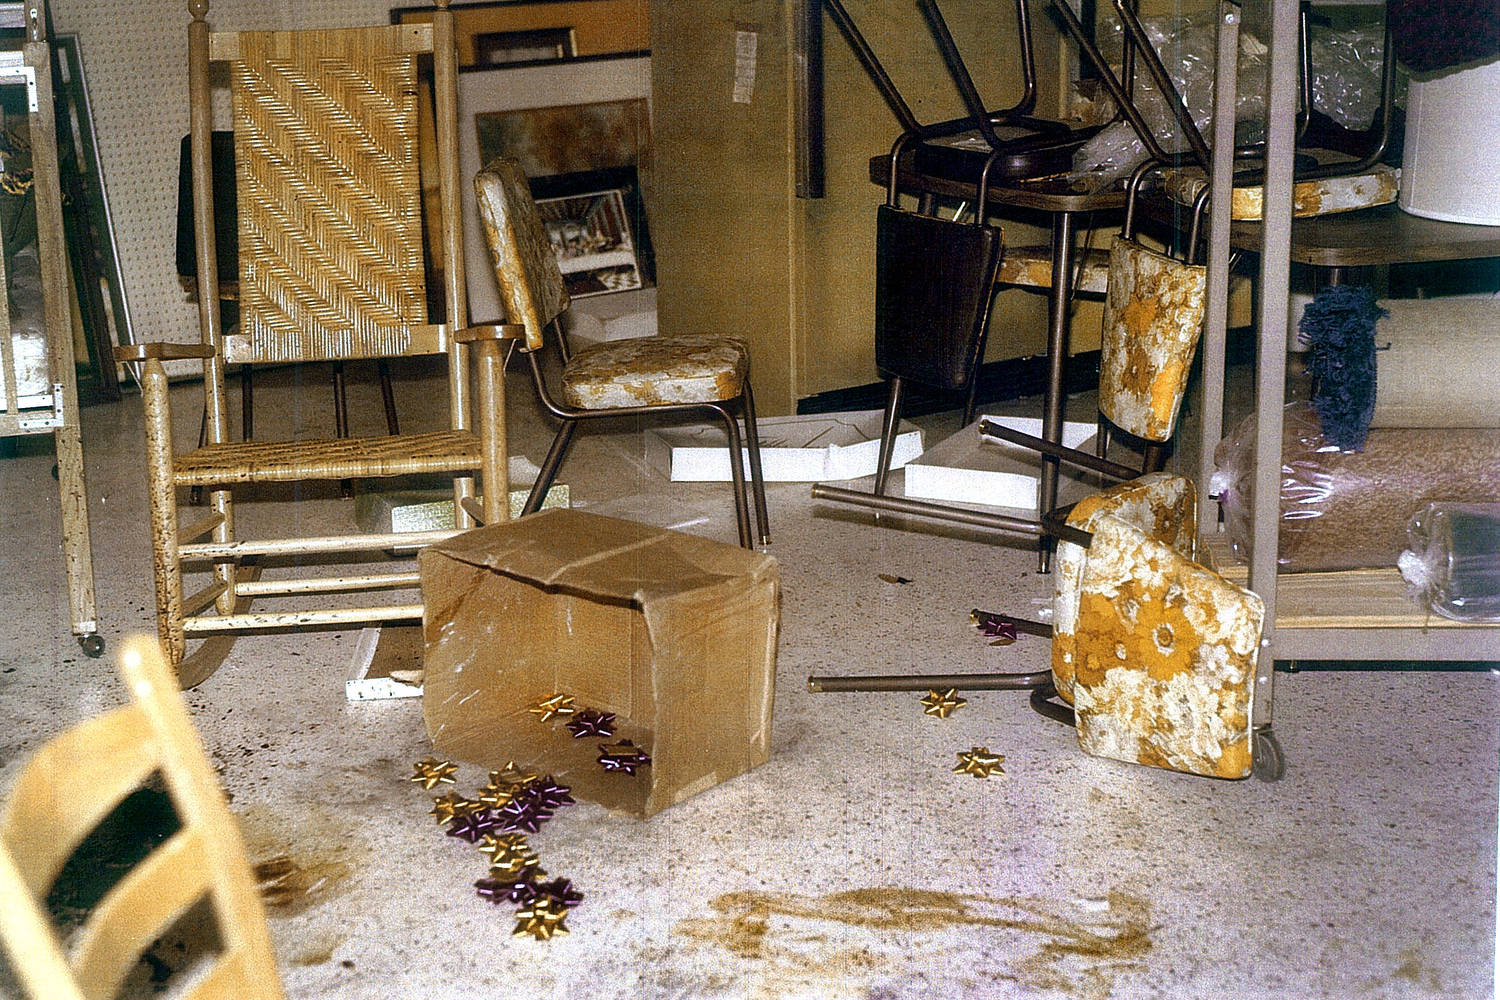 Police evidence photograph of furniture, gift wrapping bows, and blood stains scattered on the floor.